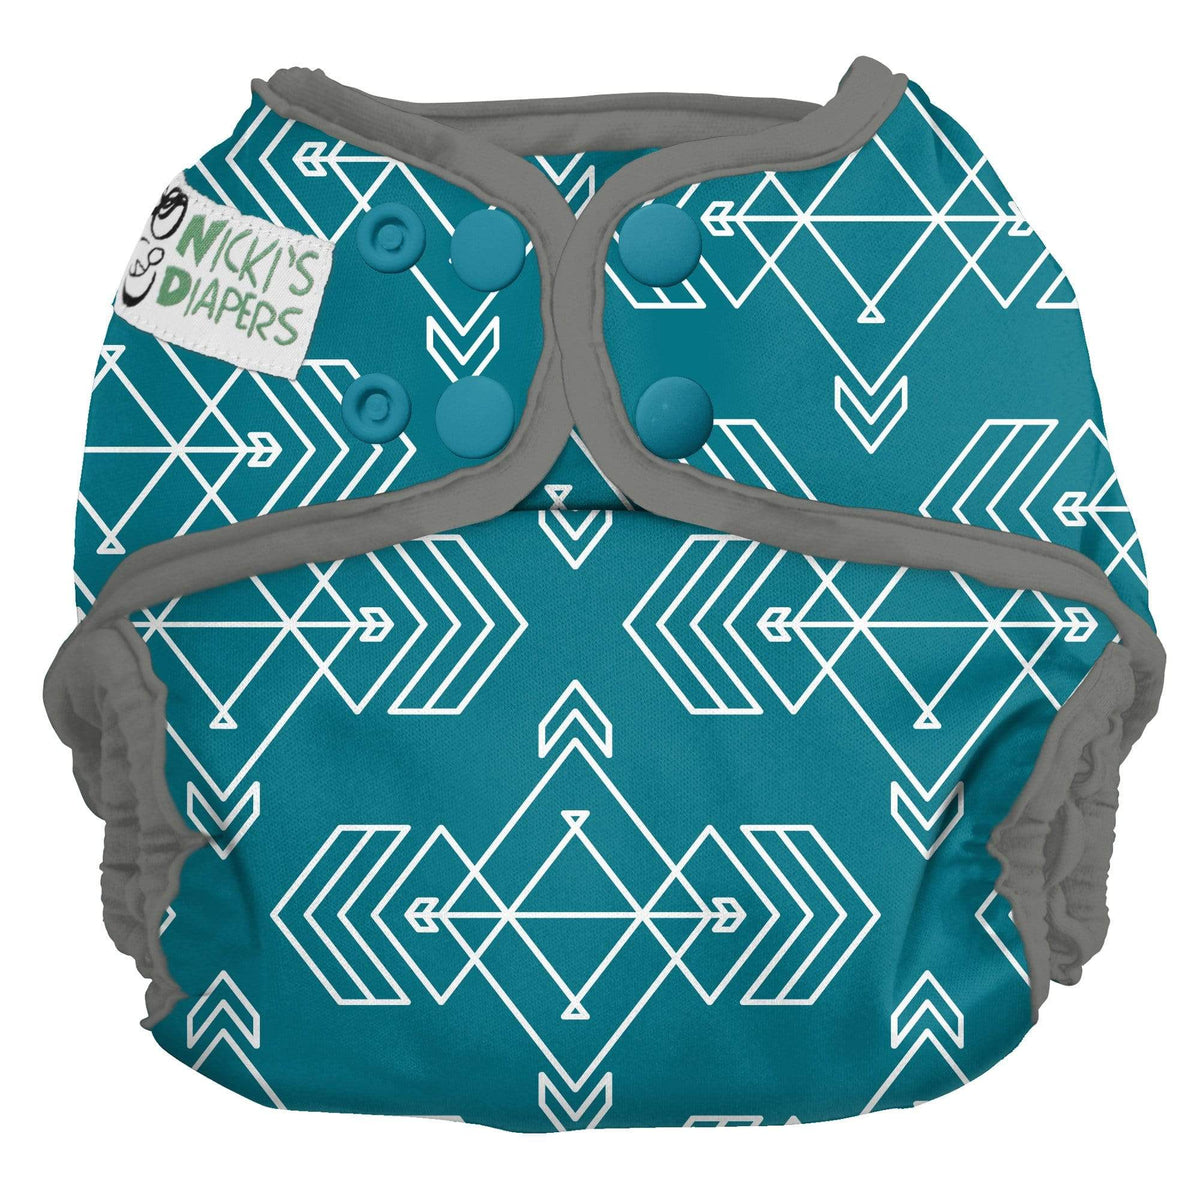 Nicki's Diapers One Size Snap Diaper Cover - Compass Lagoon